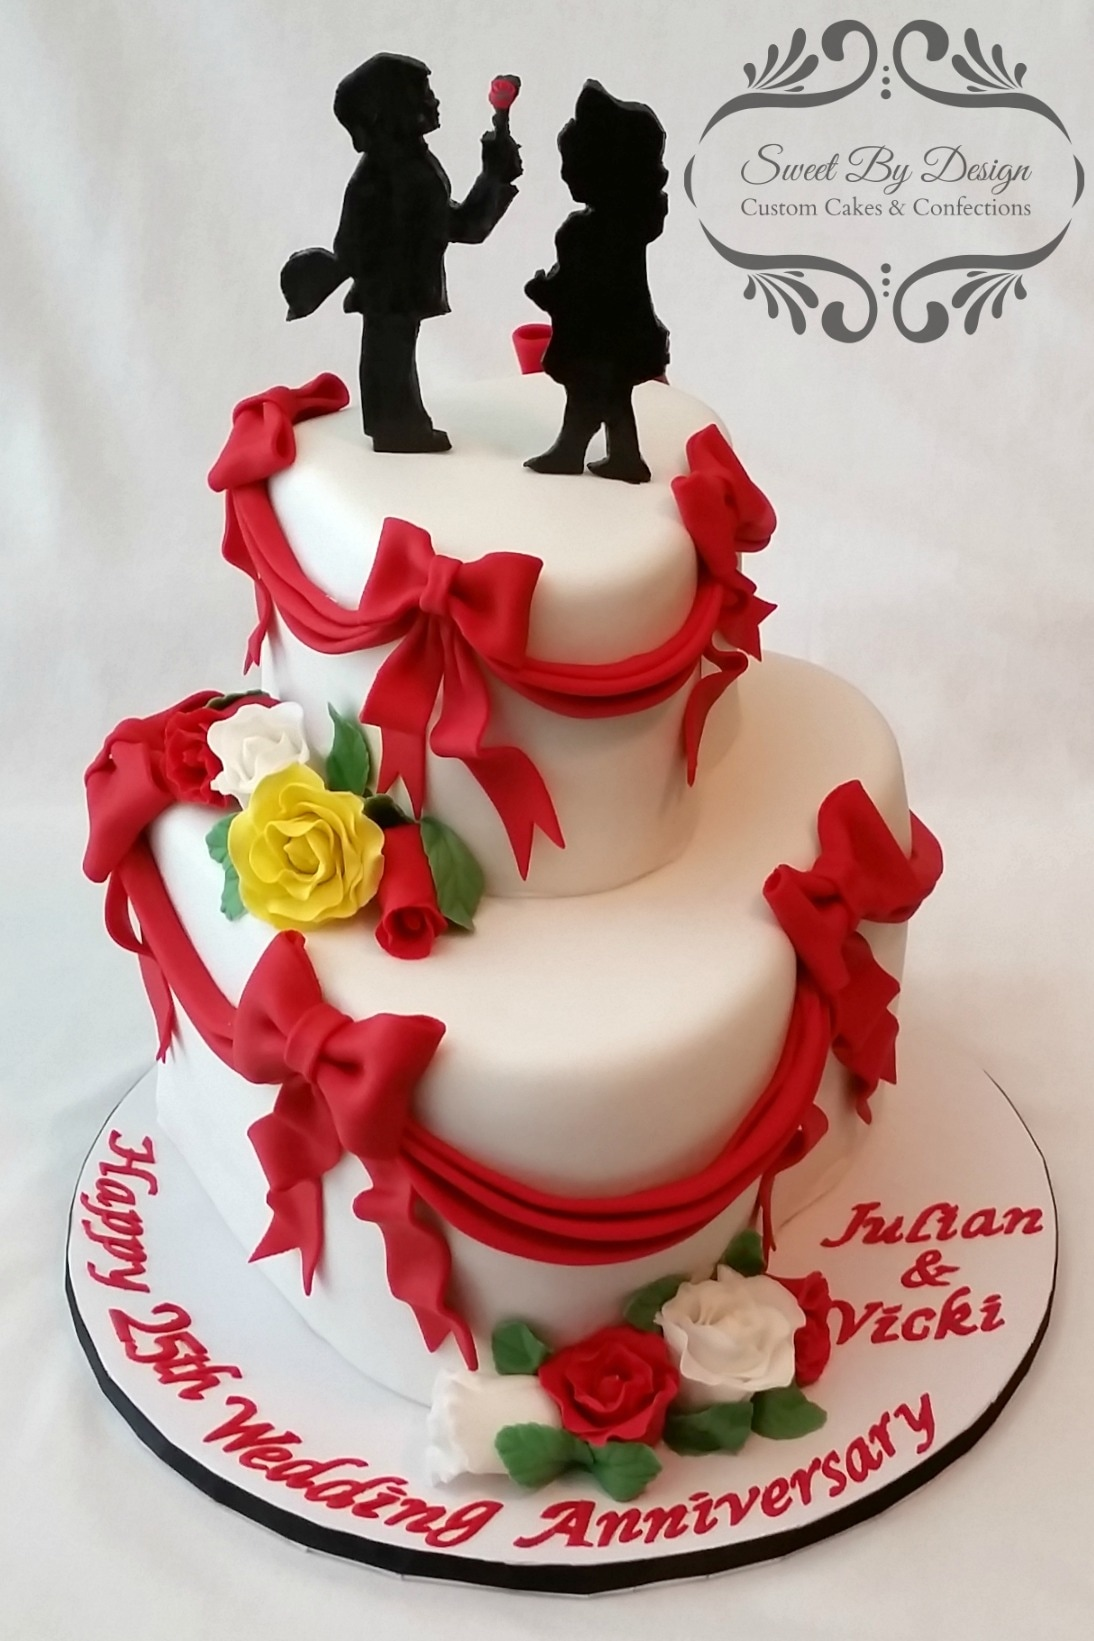 Young Love 25th Anniversary Cake Sweet By Design